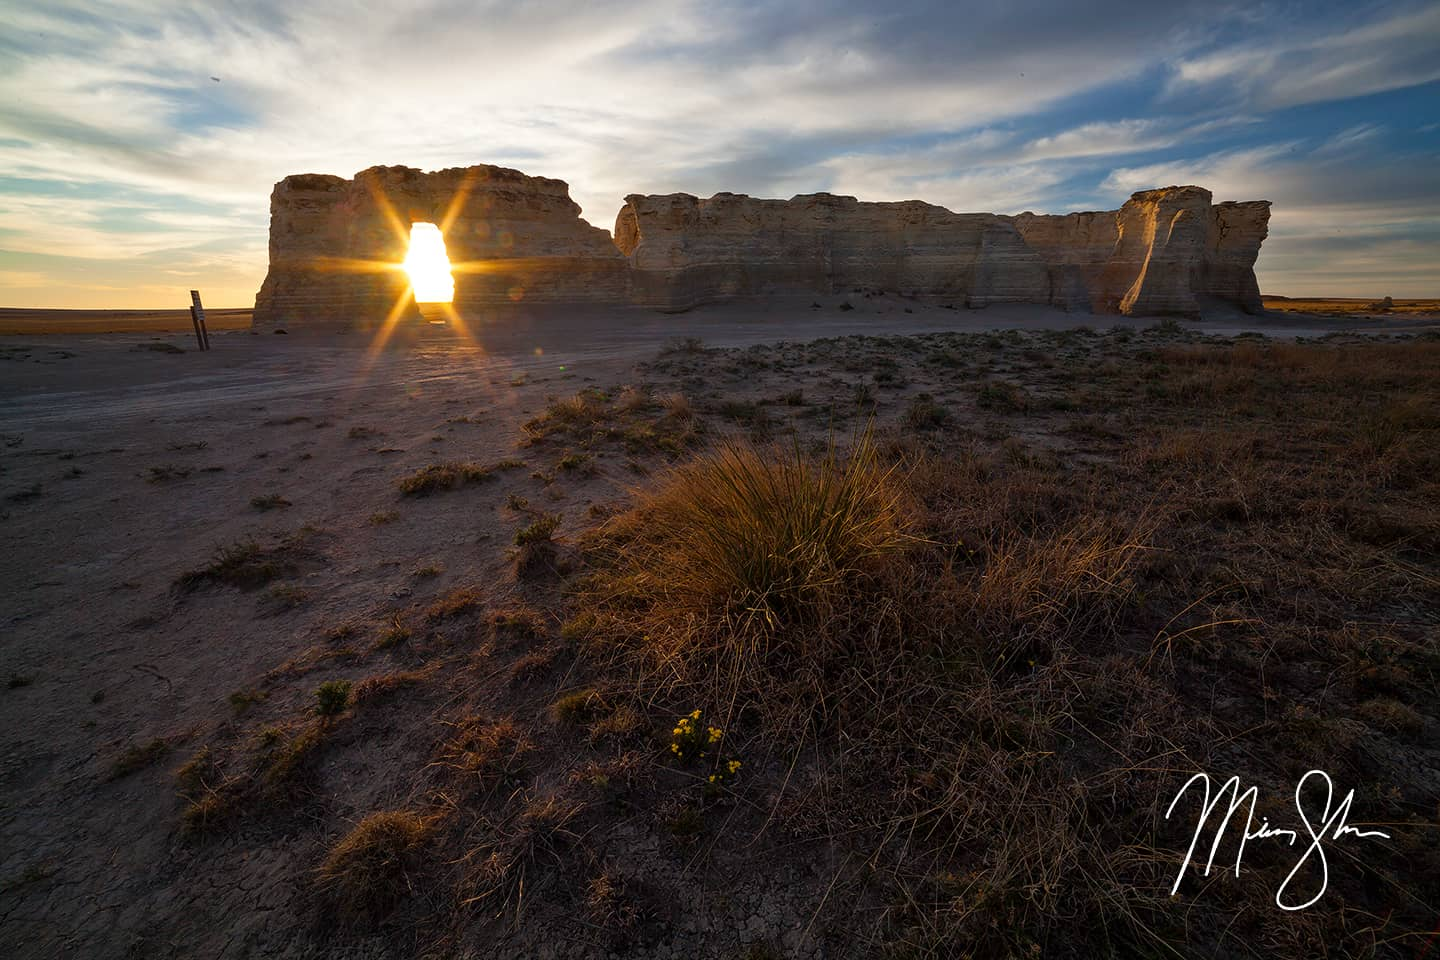 Sunburst Sunset at Monument Rocks - Monument Rocks, Kansas